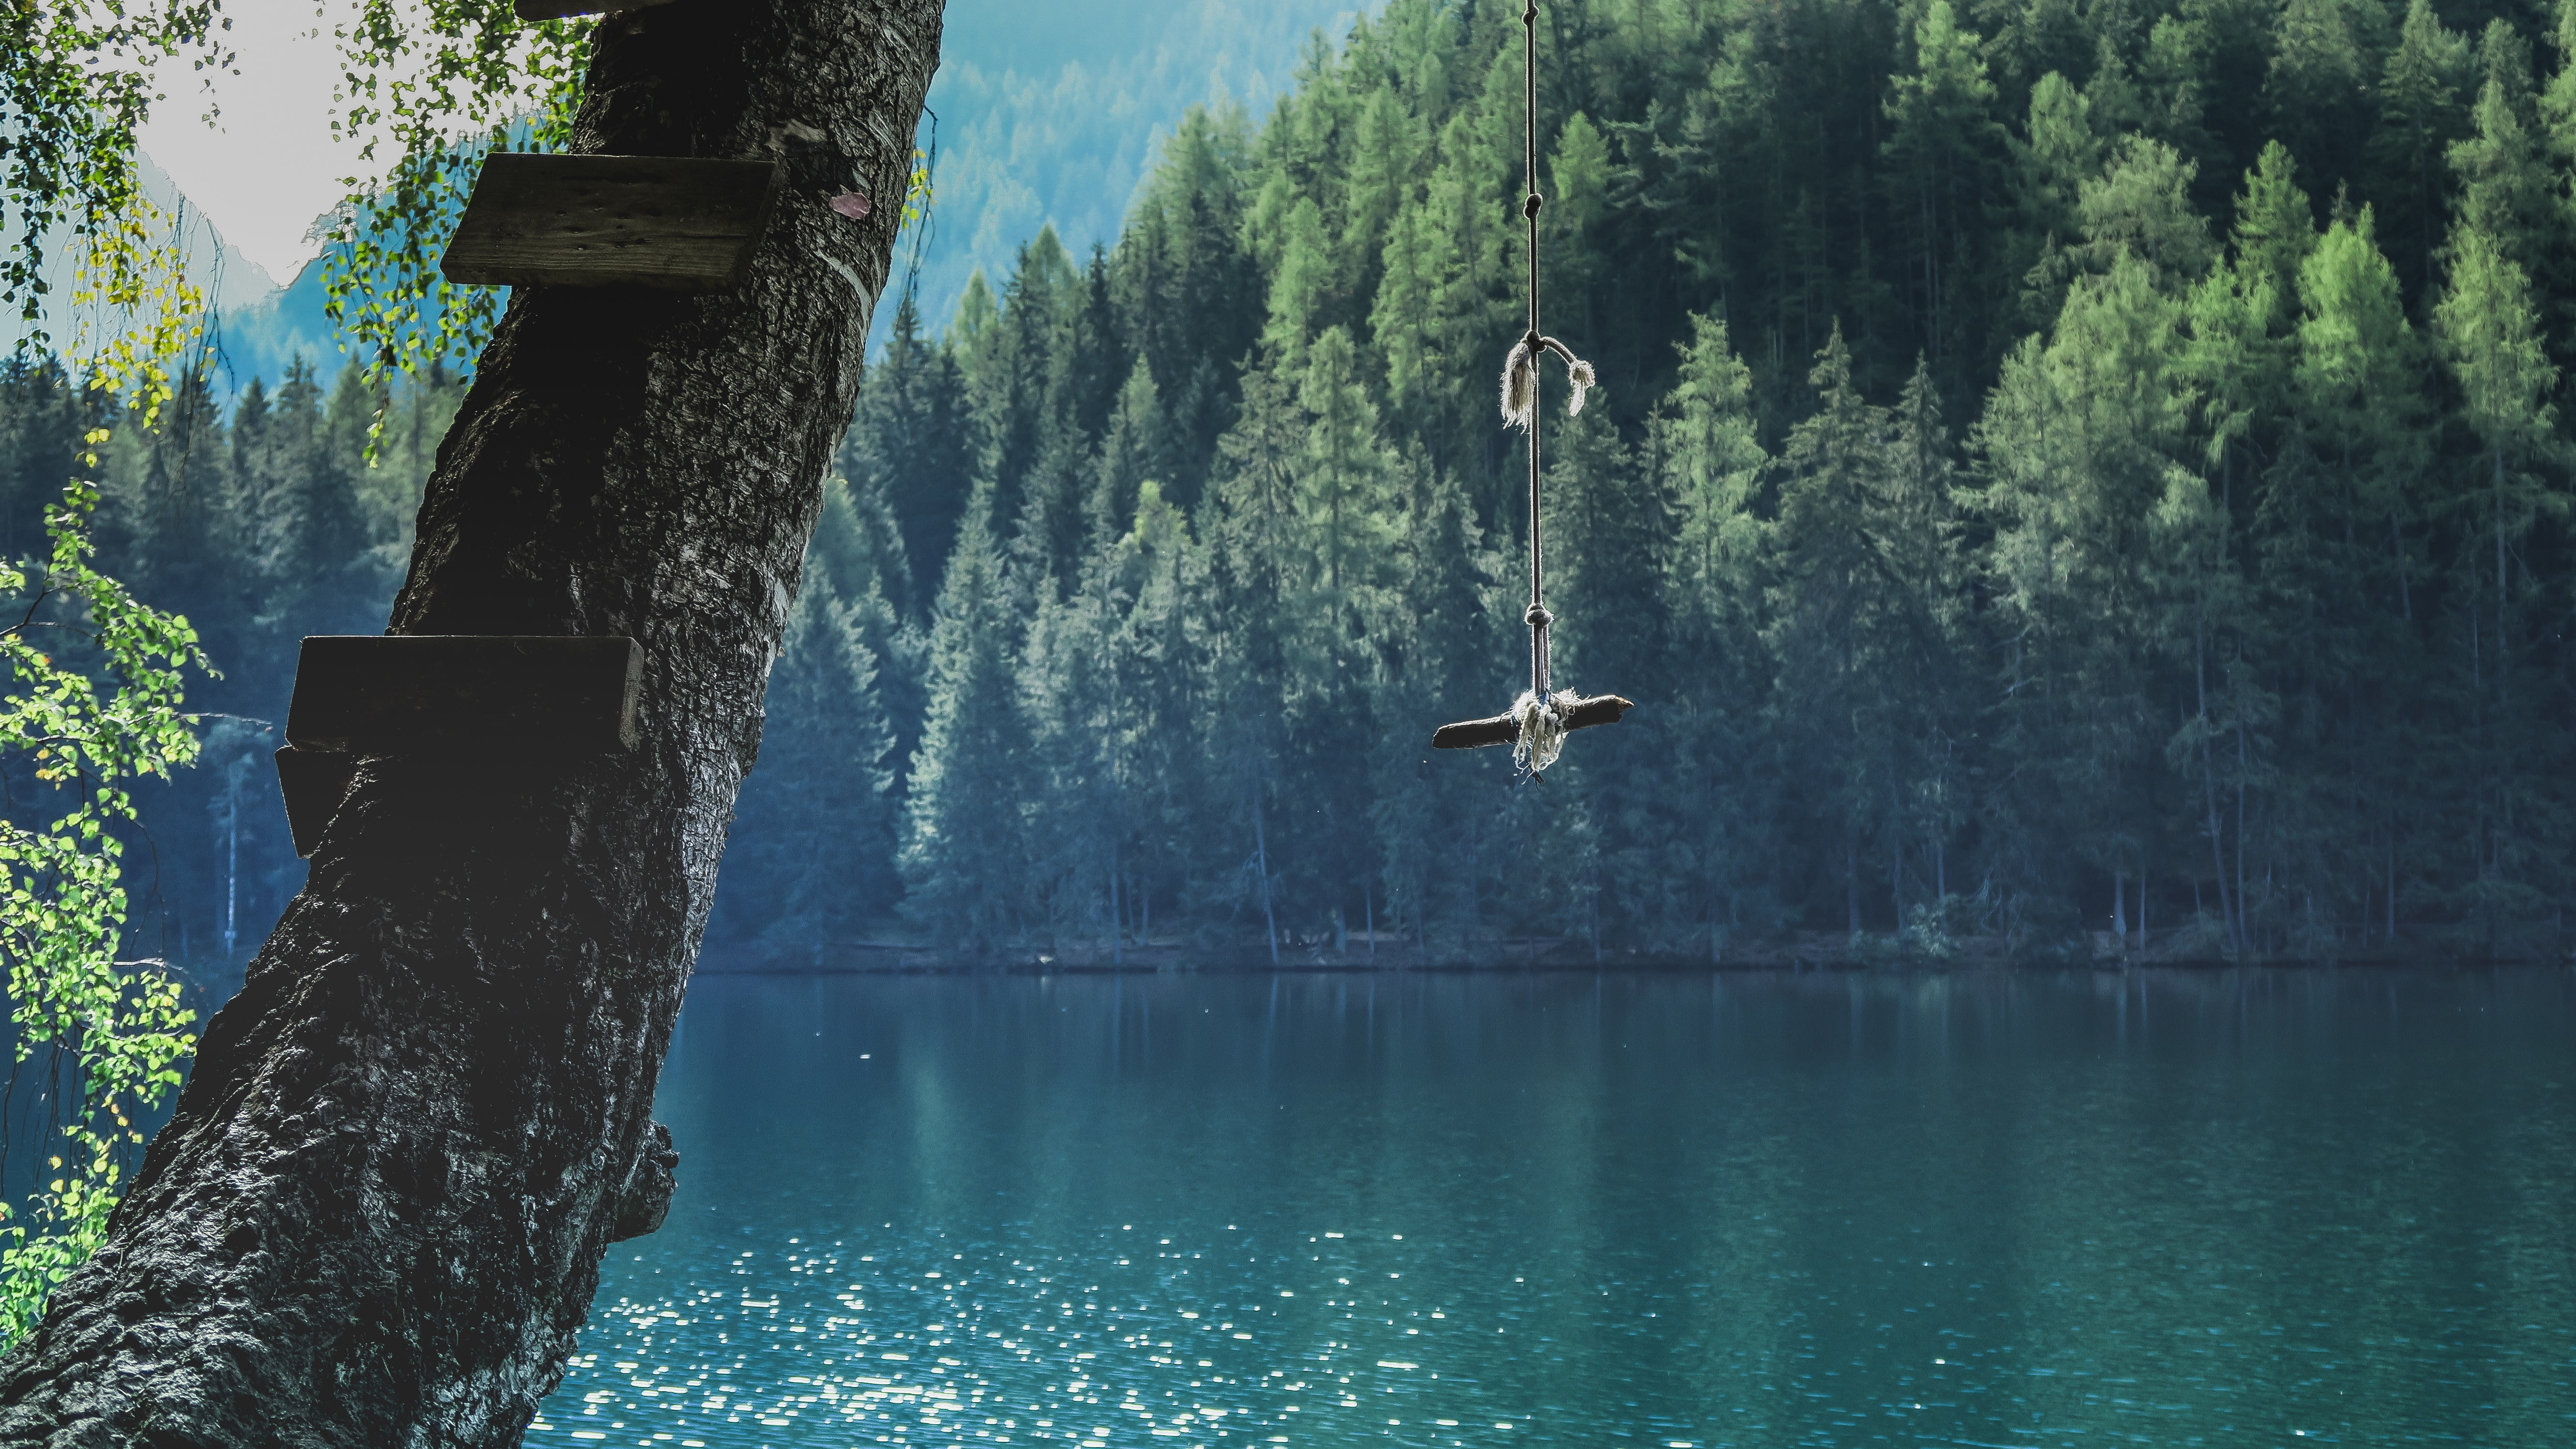 A stick on a rope hanging from a tree over Lake Piburger See